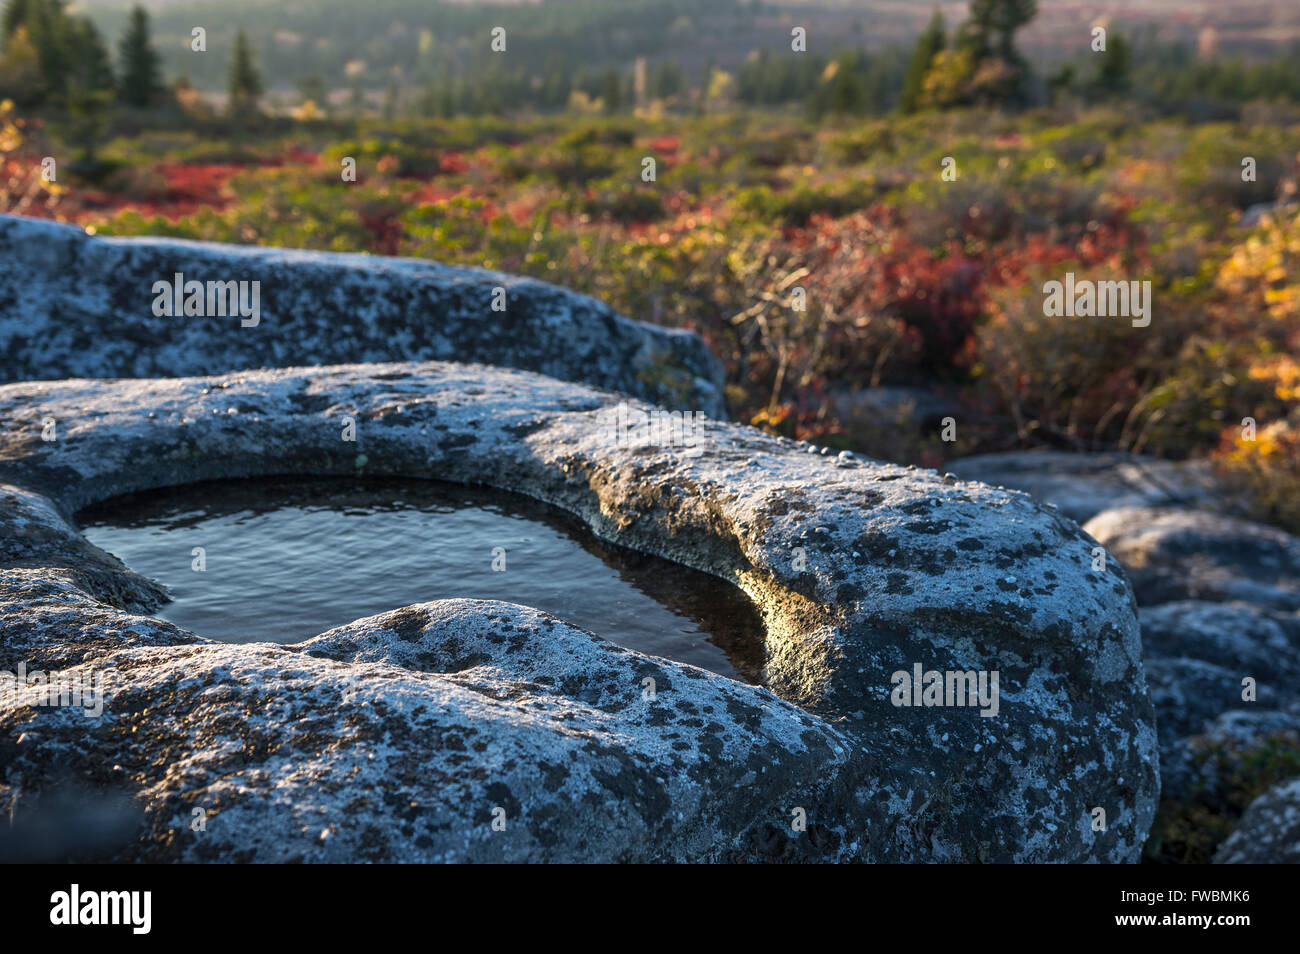 Close up of a small pool of water in a stone boulder found on a hike in the morning light against autumn foliage. Stock Photo